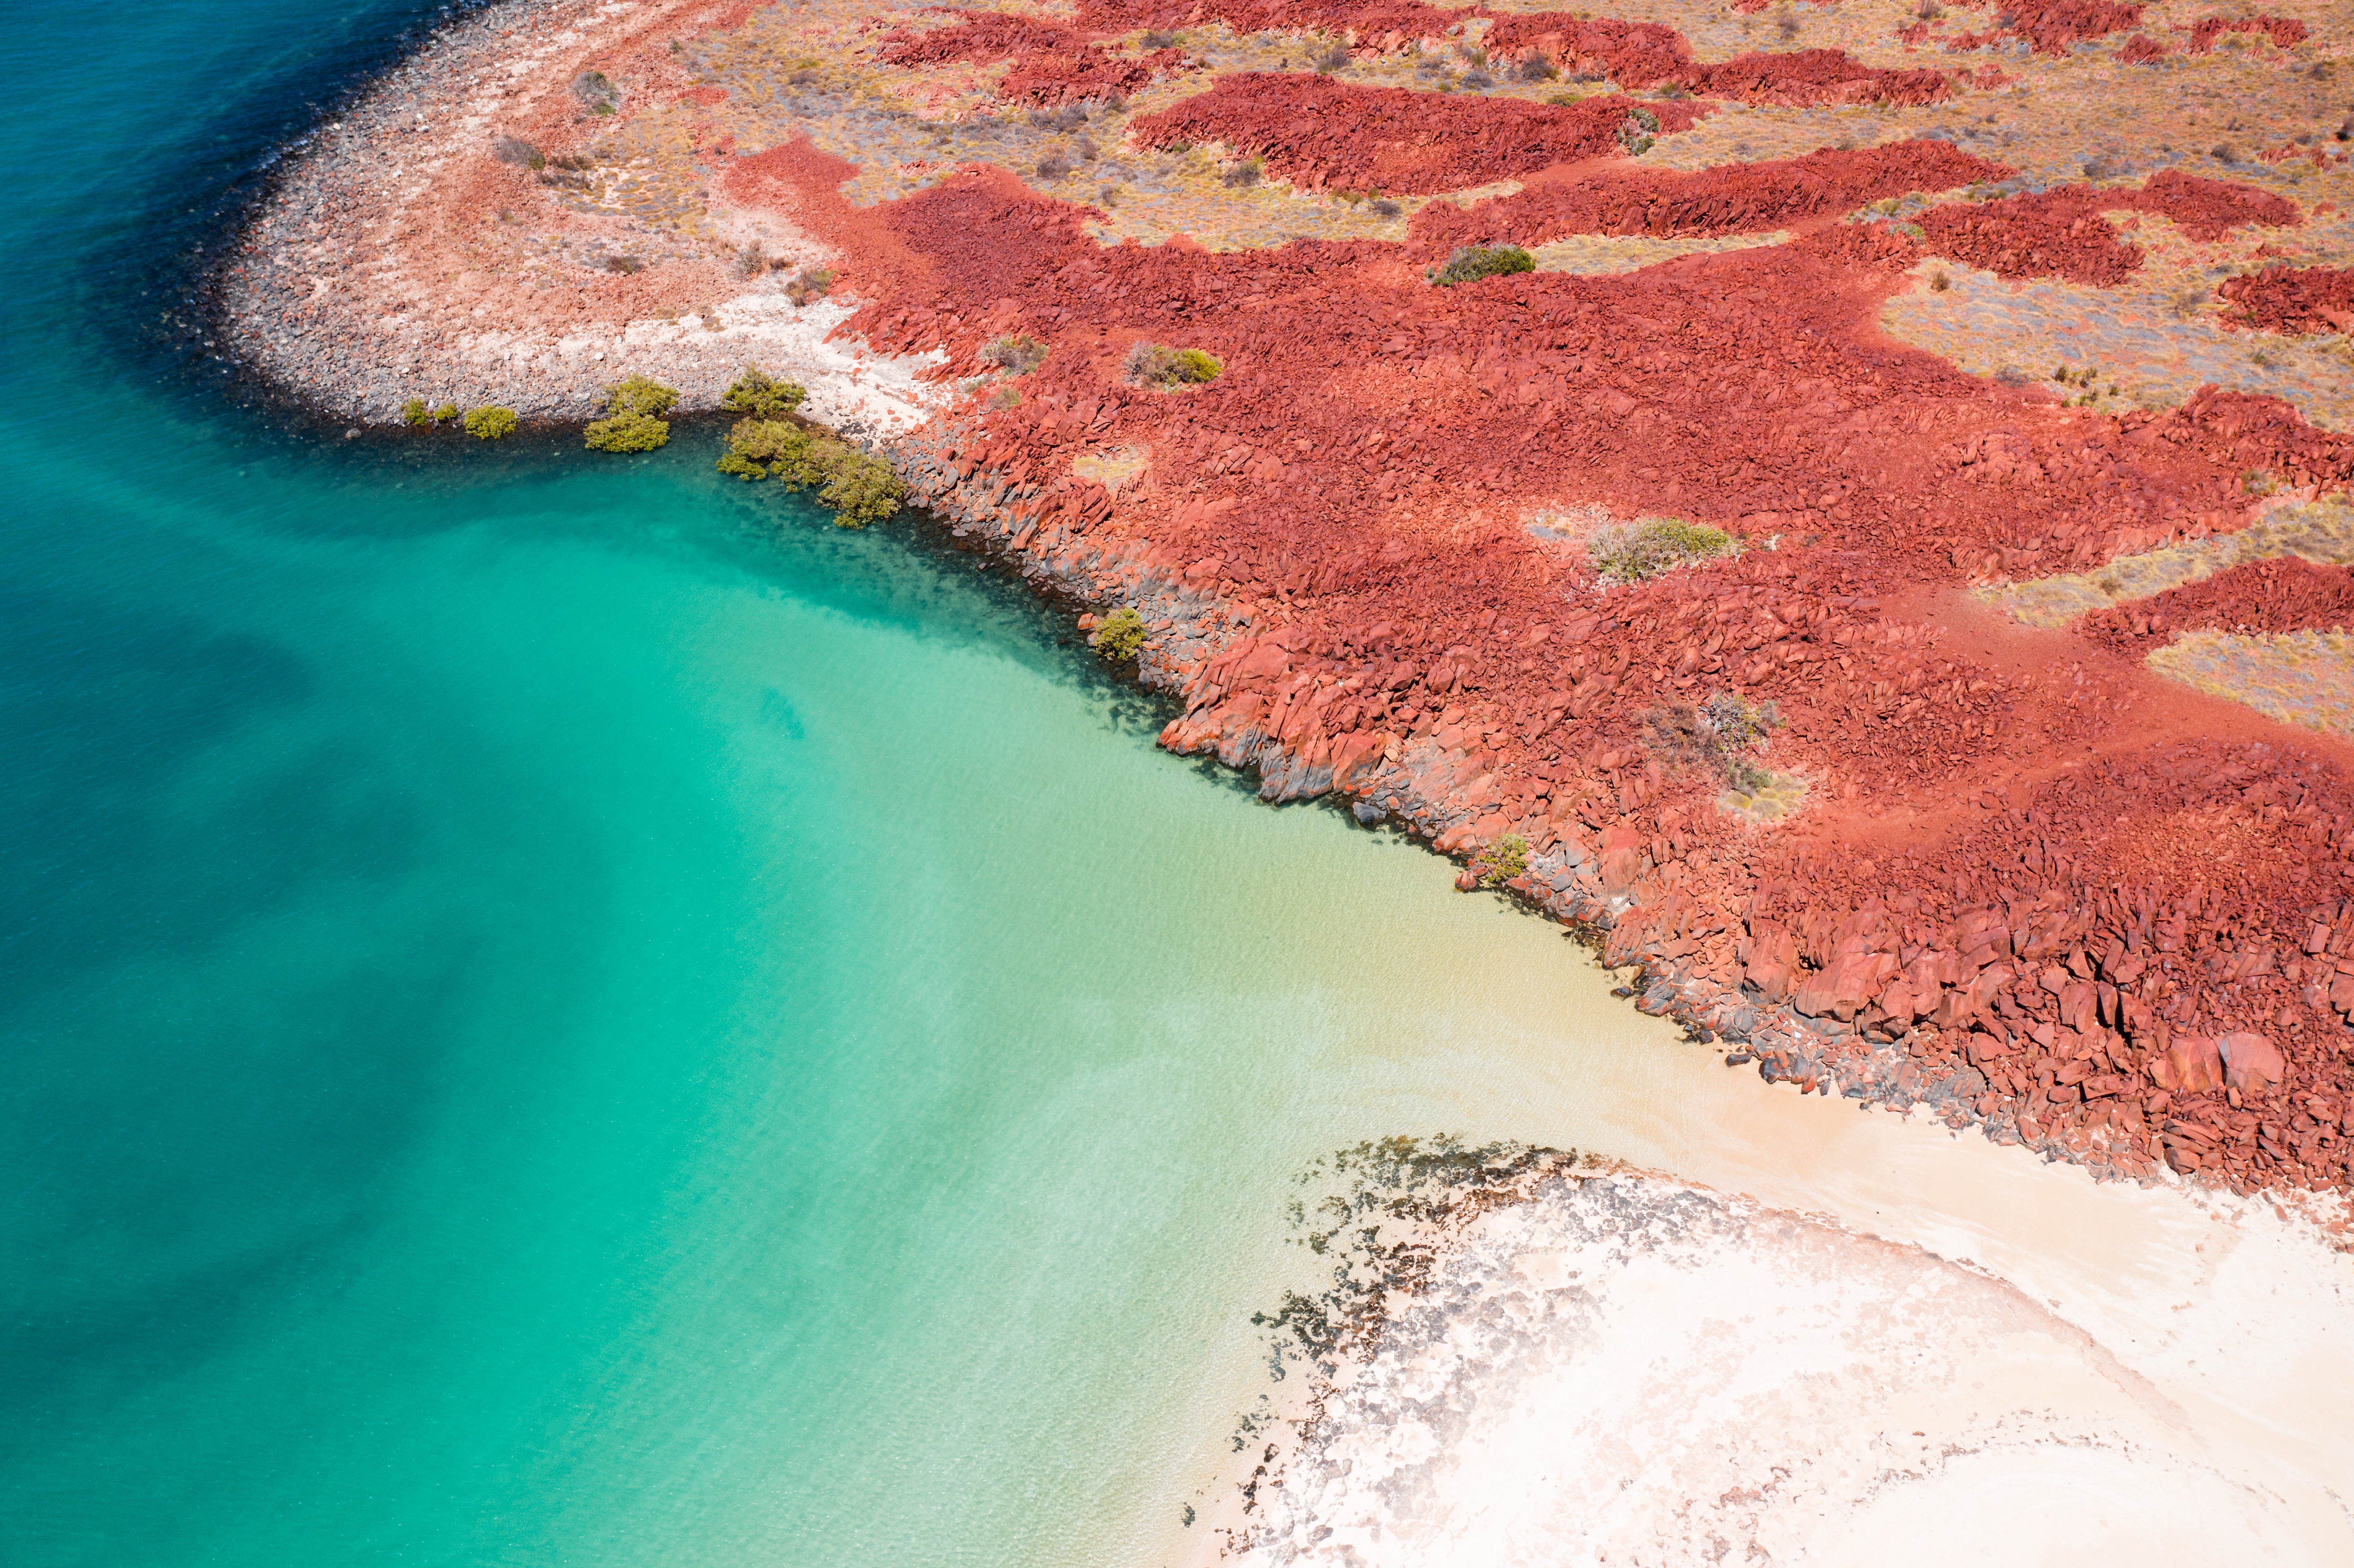 The contrasting blue hues and burnt red land of the Pilbara's Dampier Archipelago